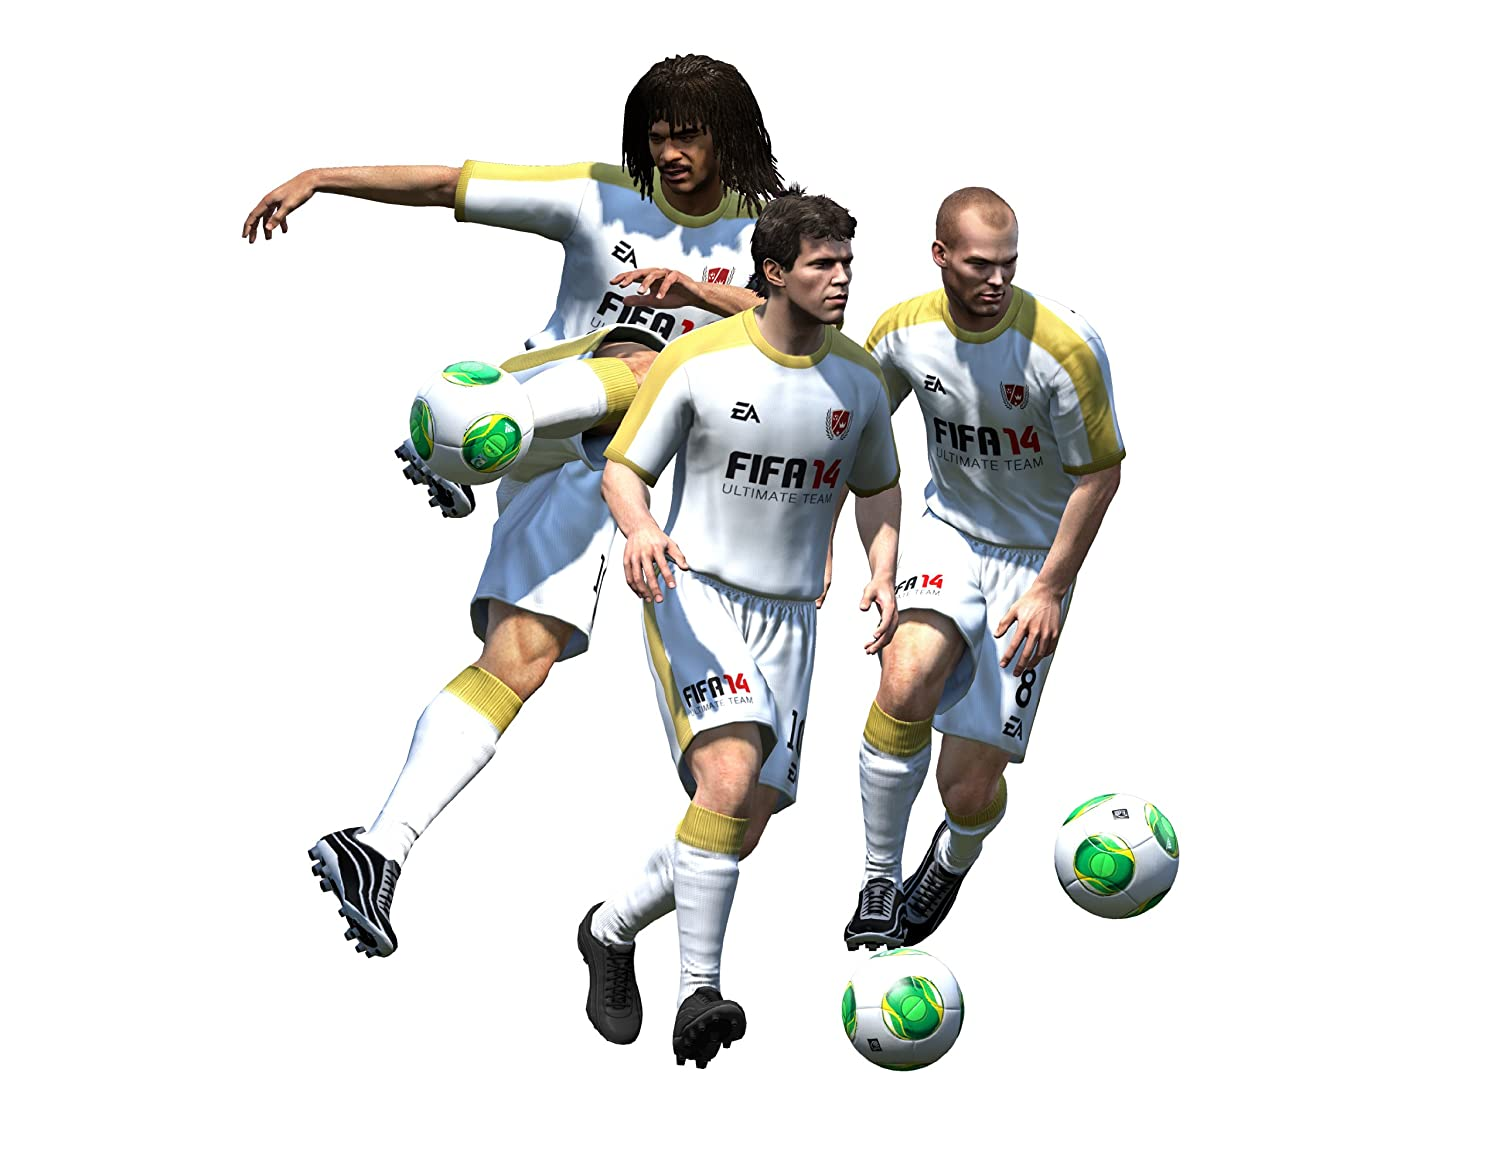 fifa 14 free download for windows 8